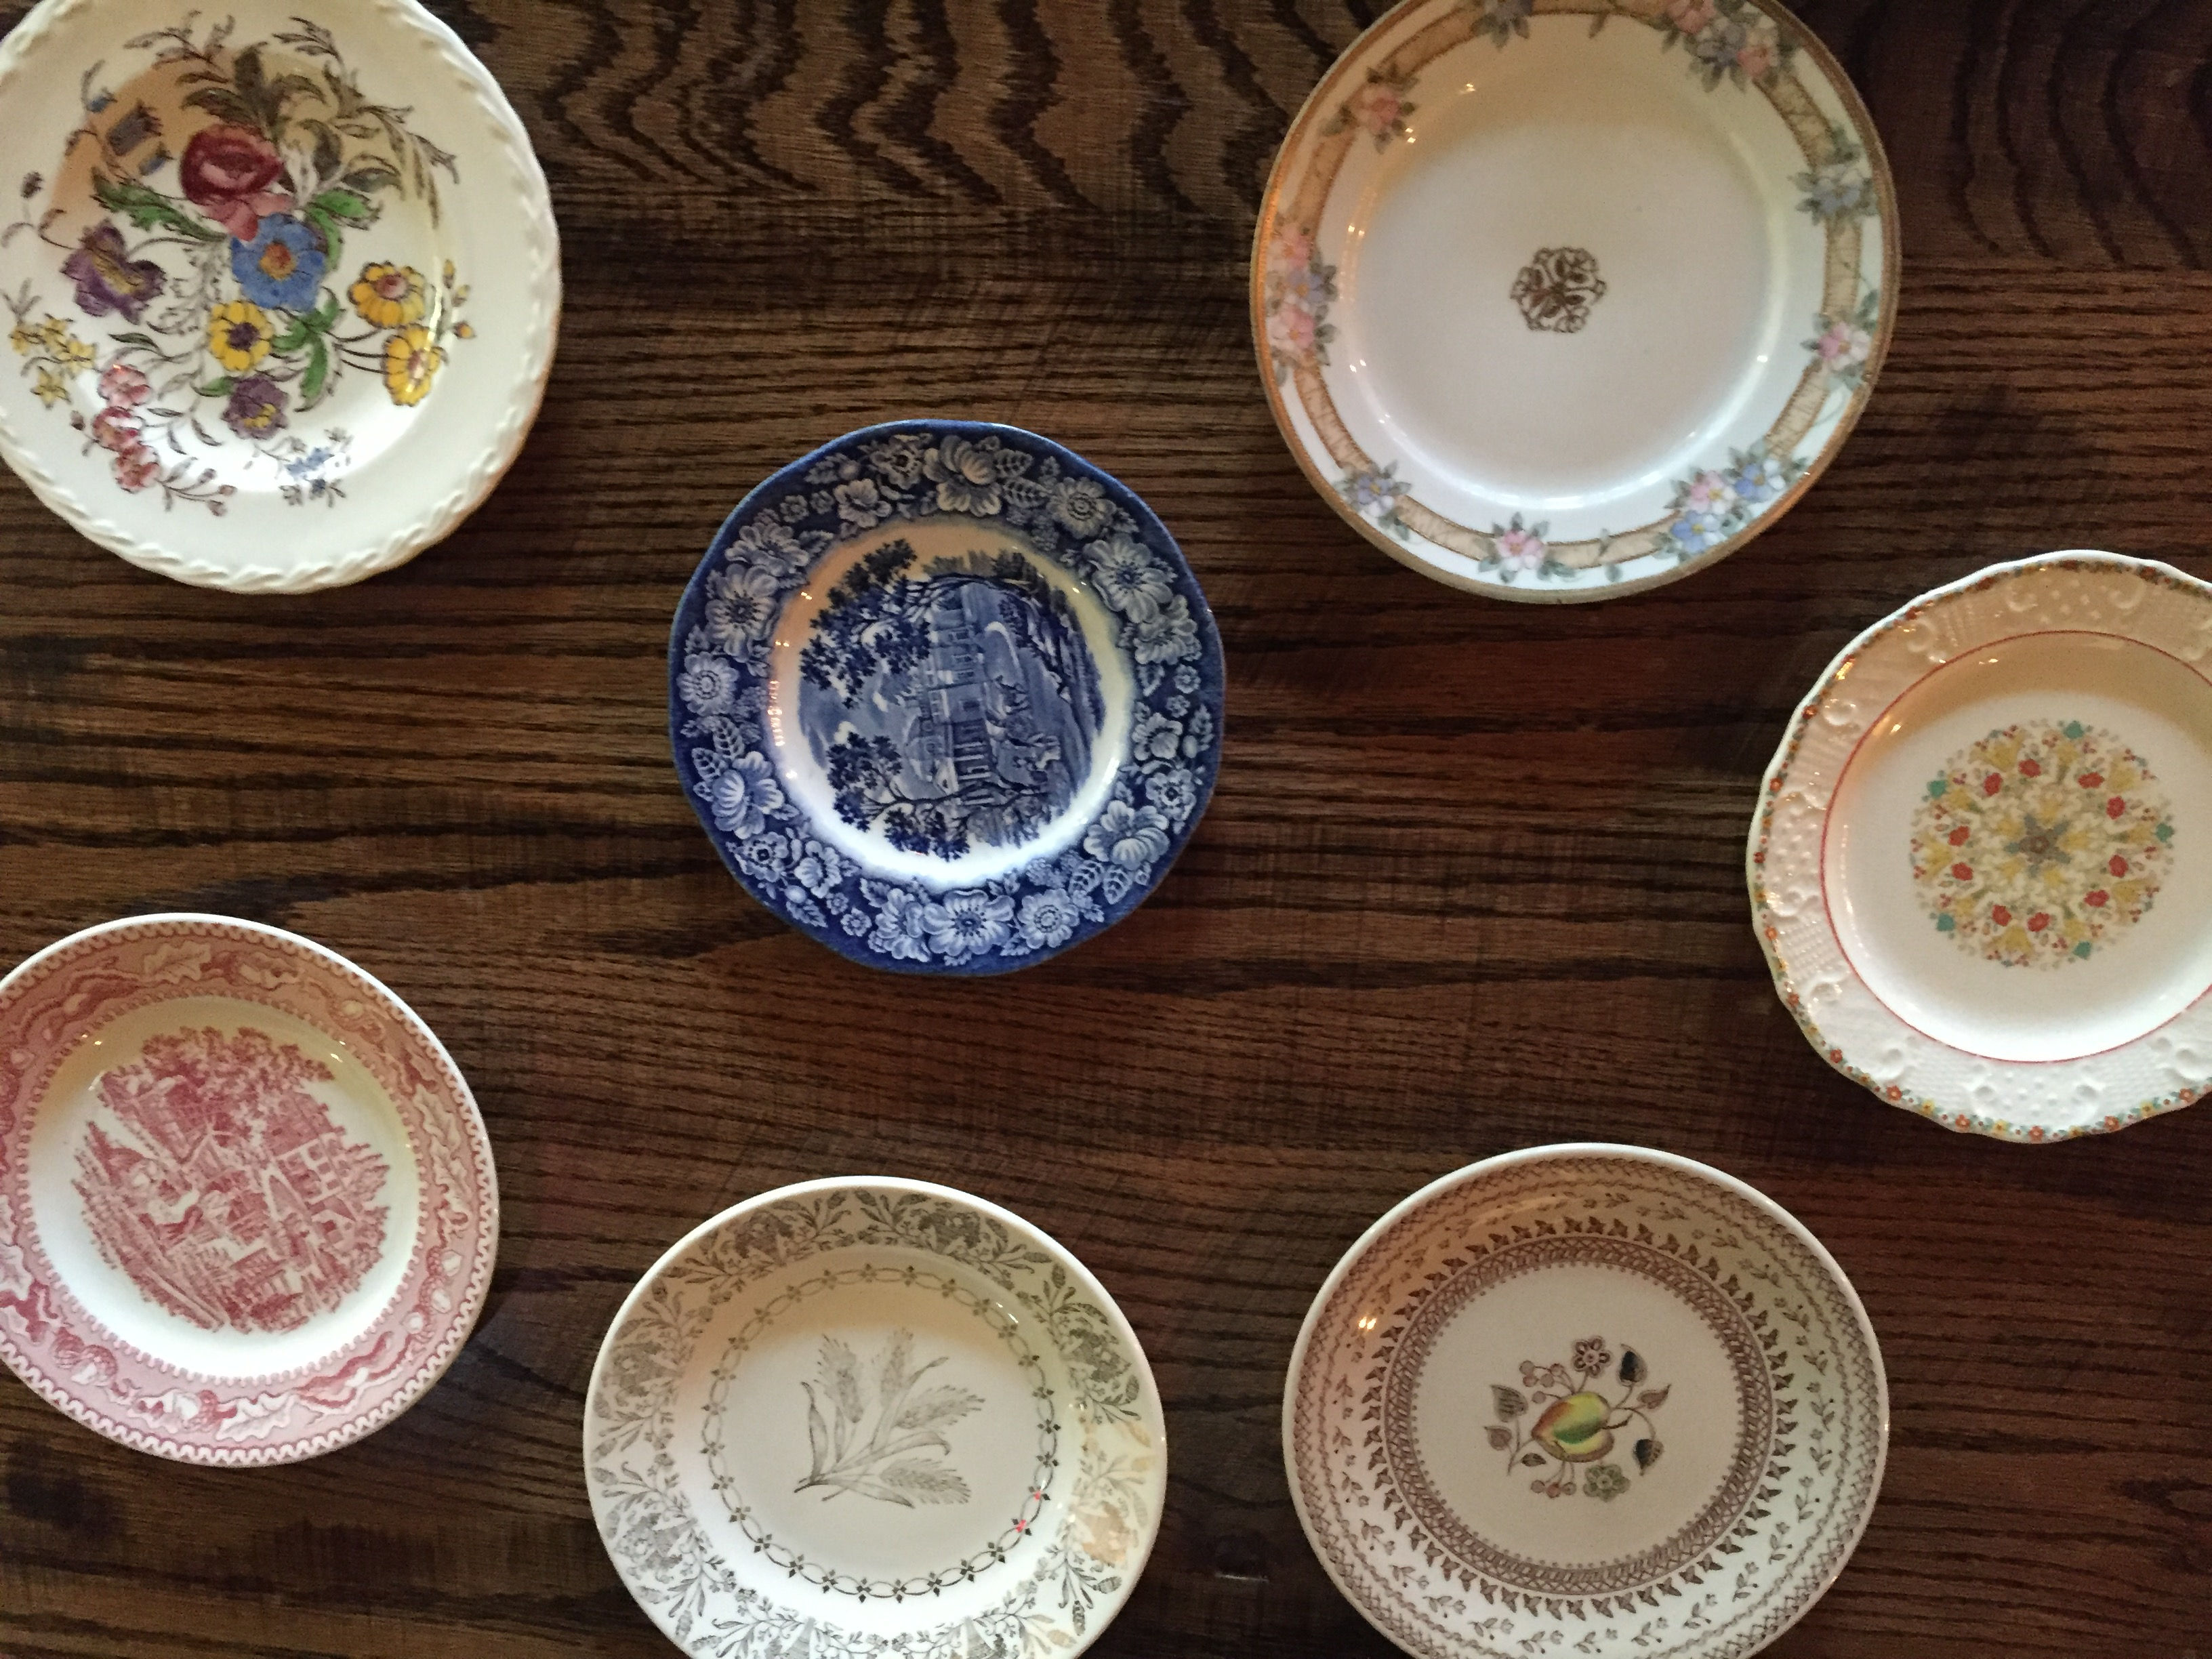 Vintage bread and butter plates disappearing from Macon Bistro